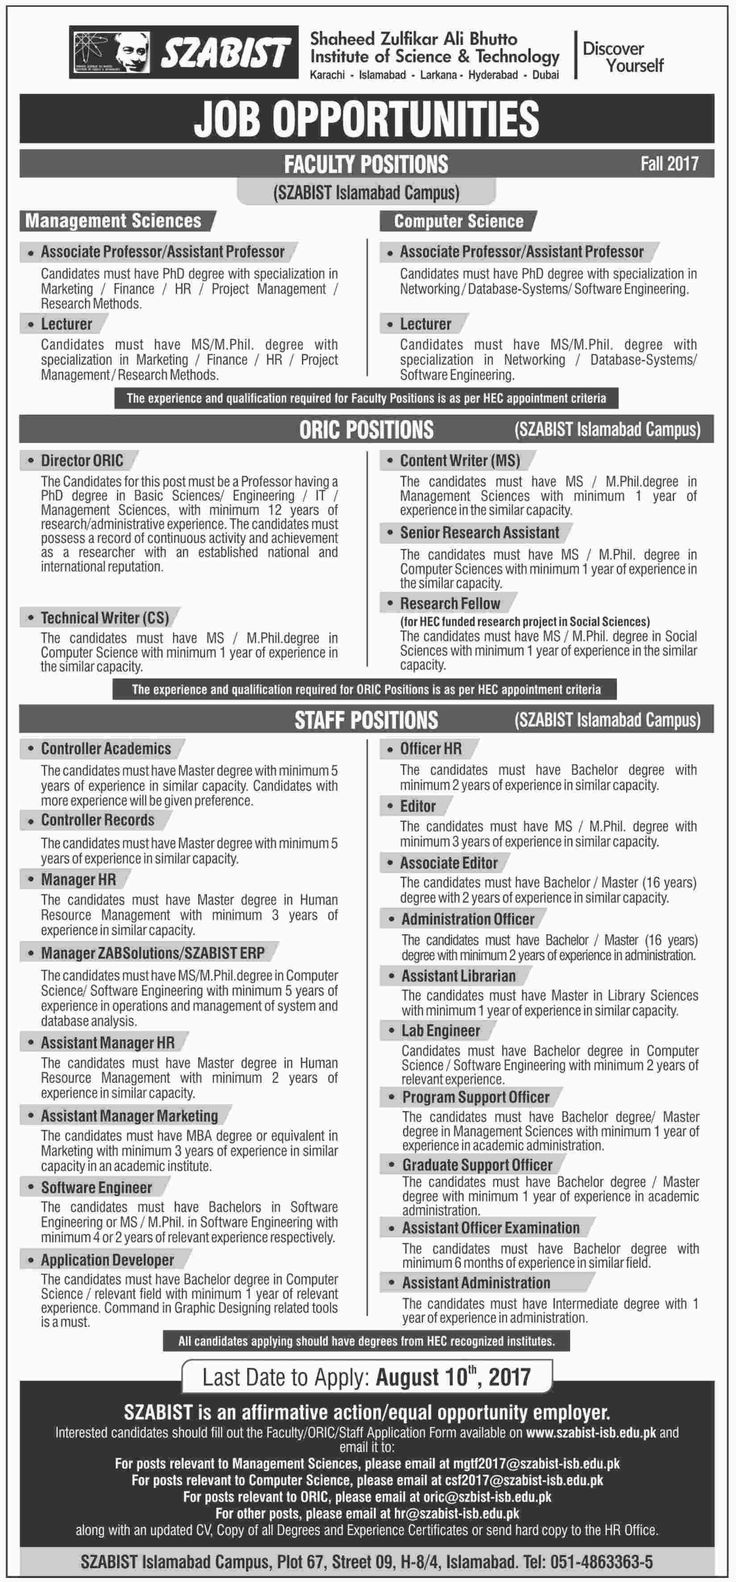 Shaheed Zulfikar Ali Bhutto Institute of Science & Technology Jobs, Islamabad Campus